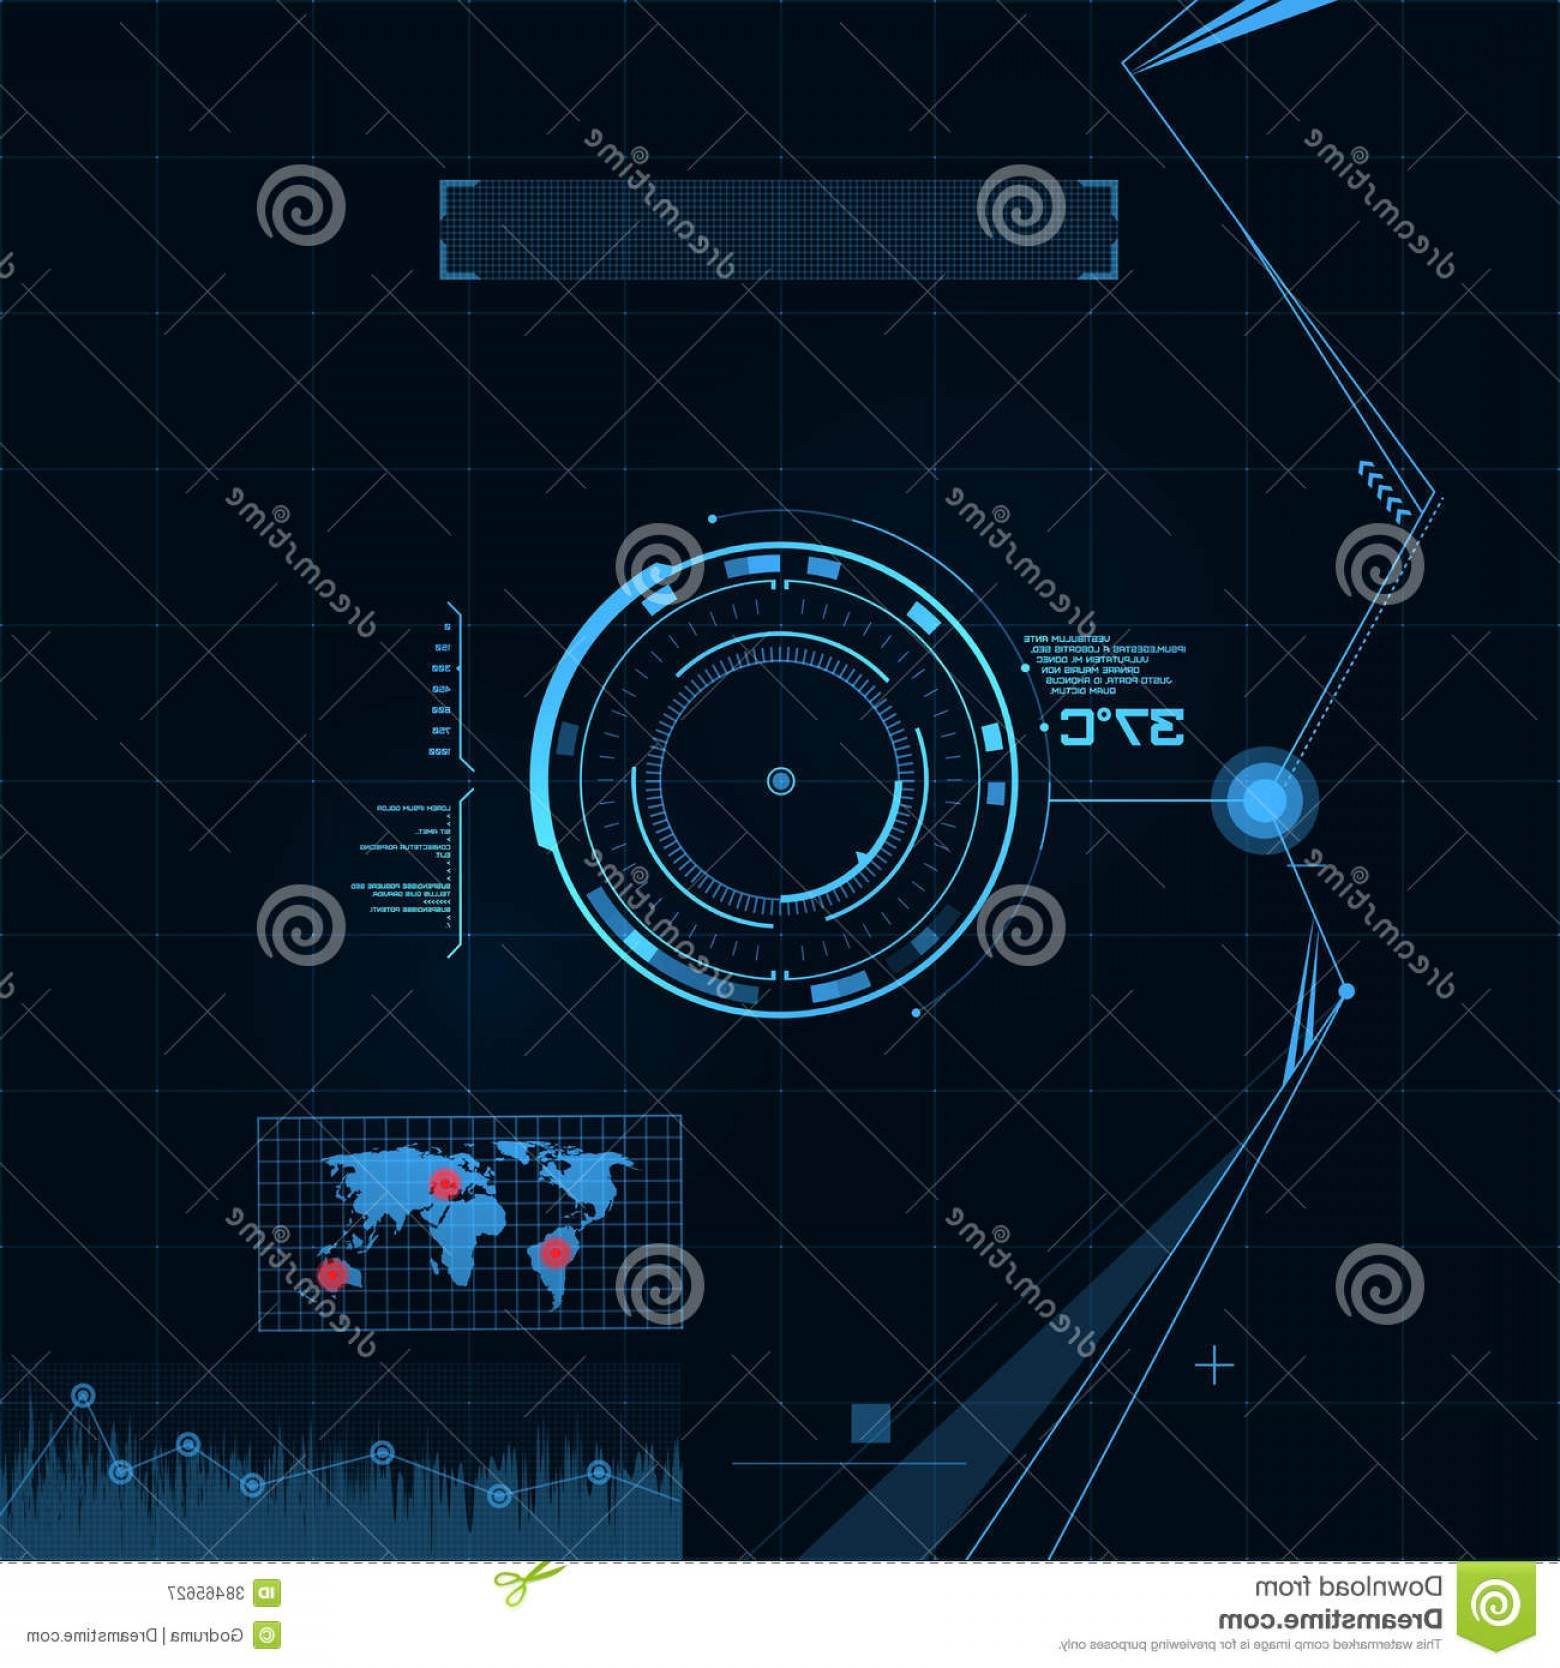 Futuristic Render Vector Graphics: Royalty Free Stock Photography Hud Gui Set Futuristic User Interface Vector Illustration Your Design Image